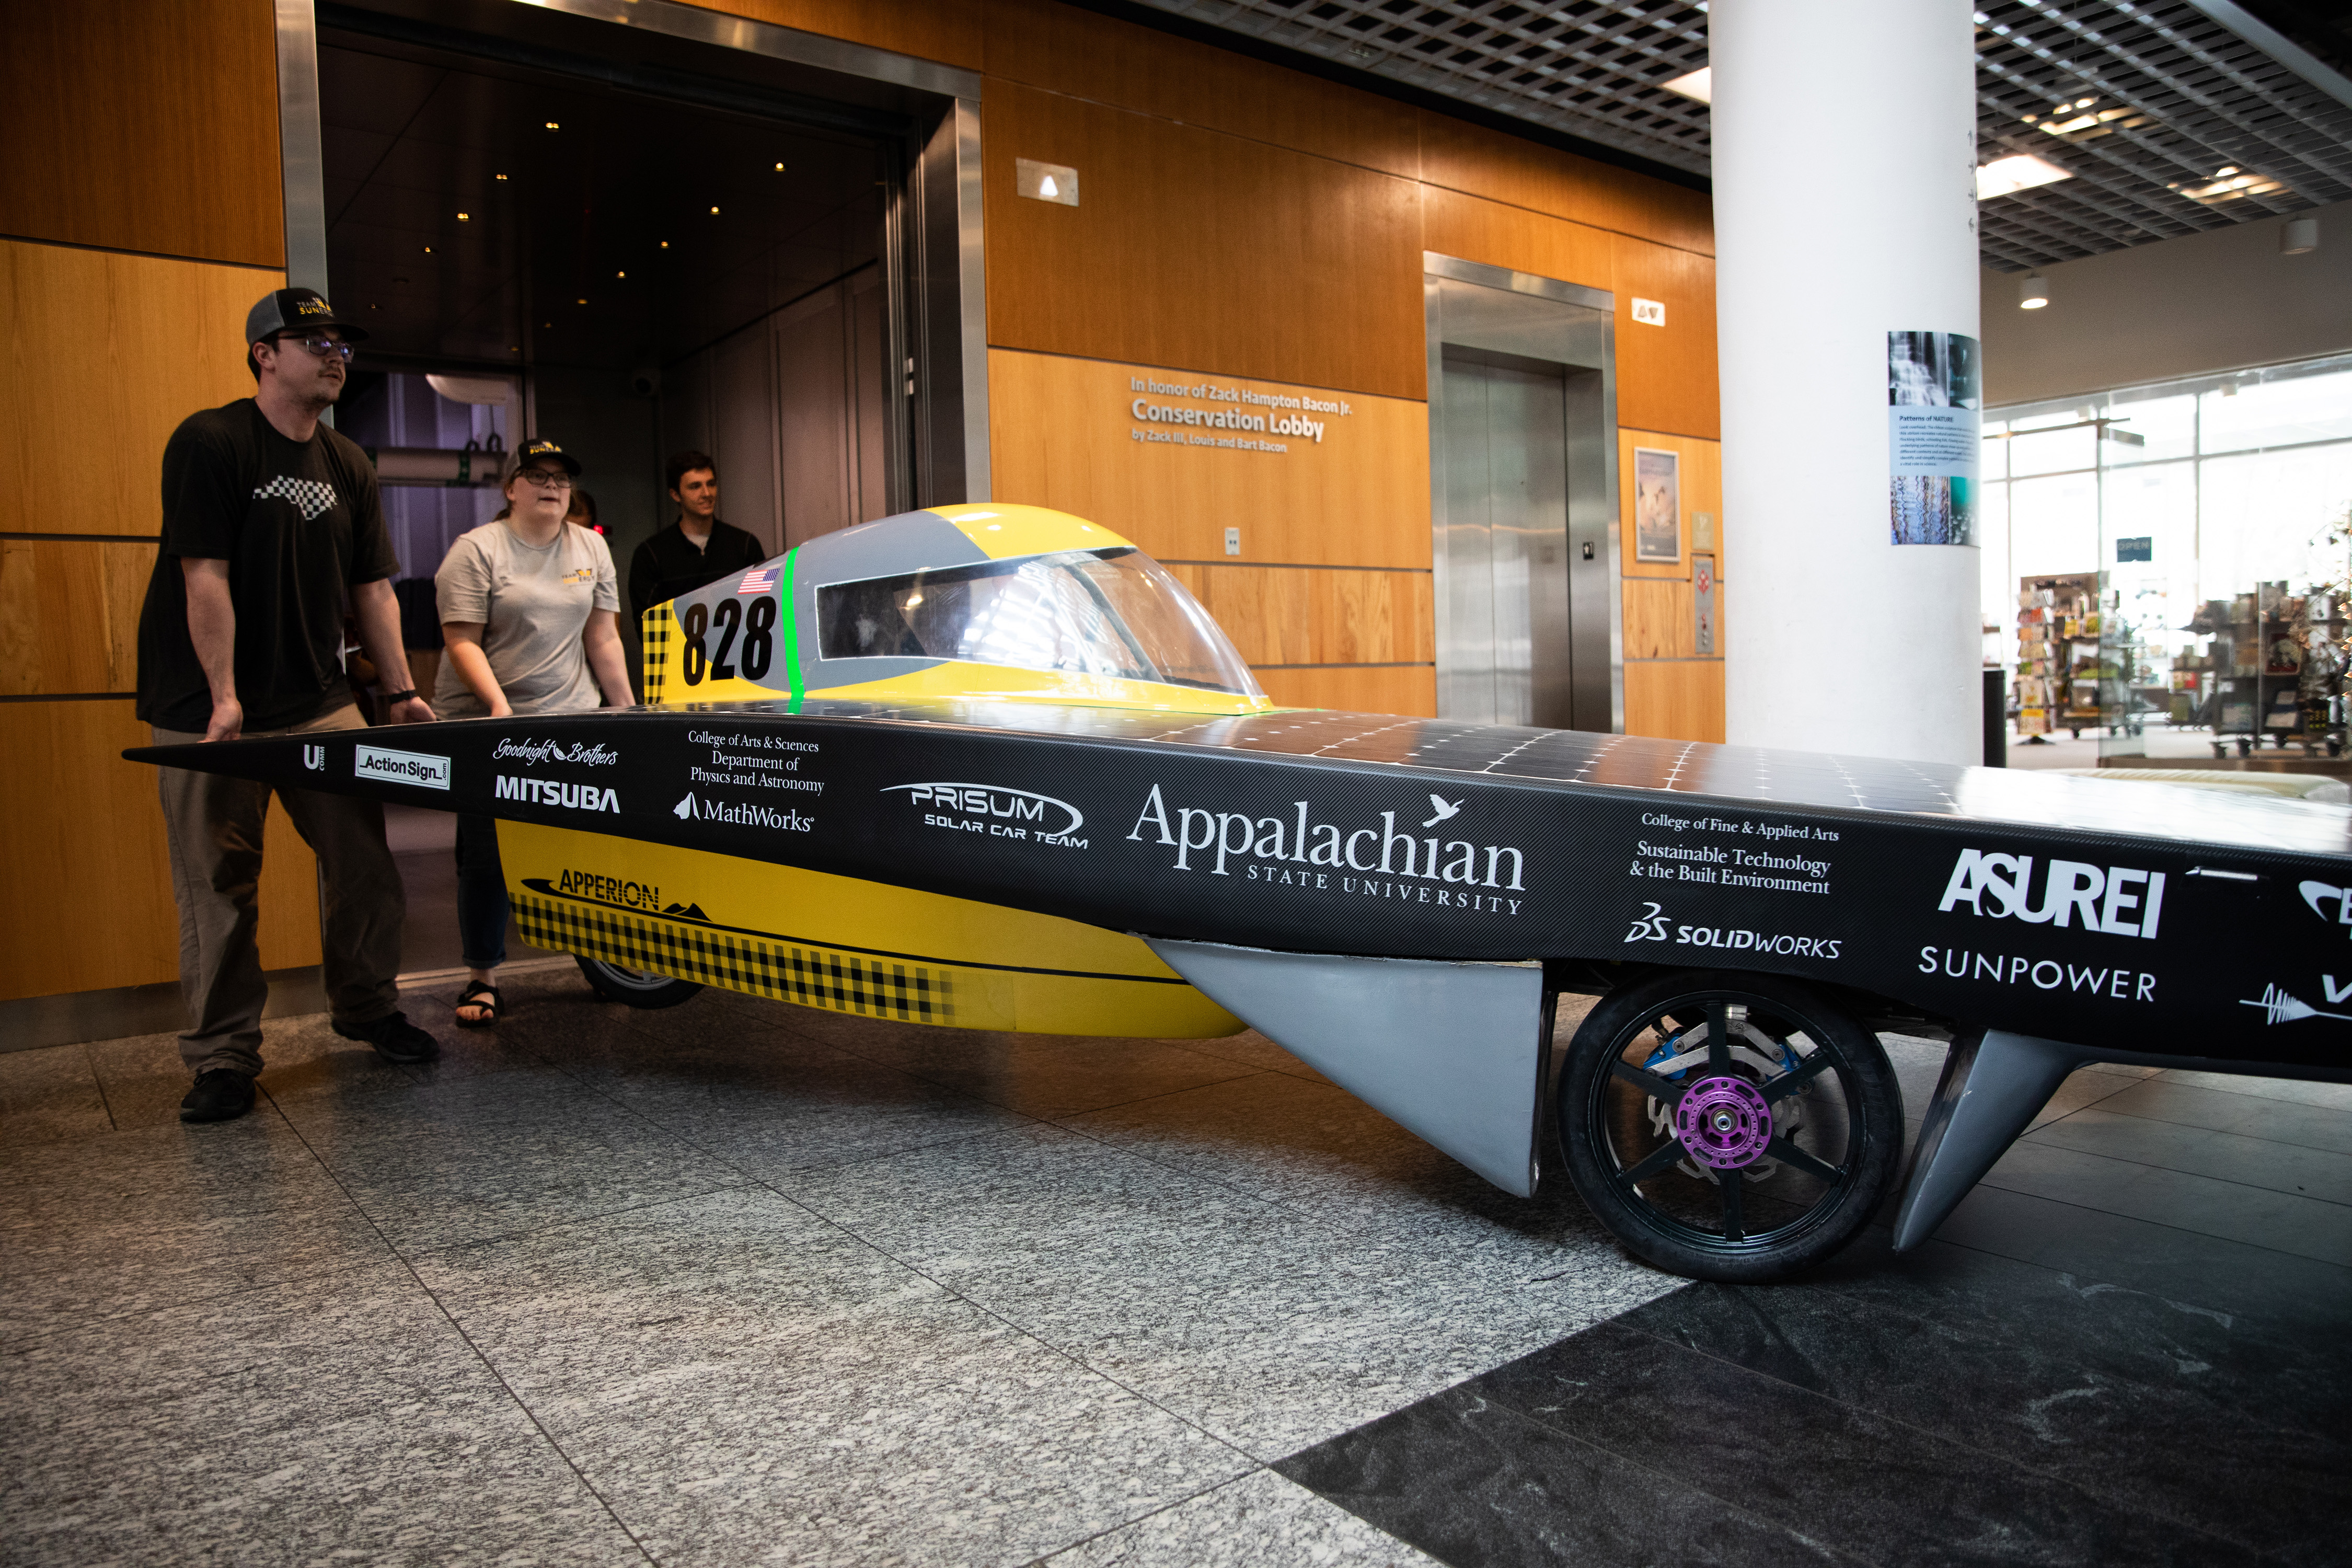 Appalachian S First Solar Vehicle Apperion Featured In 2019 Triangle Scitech Expo Appalachian Today